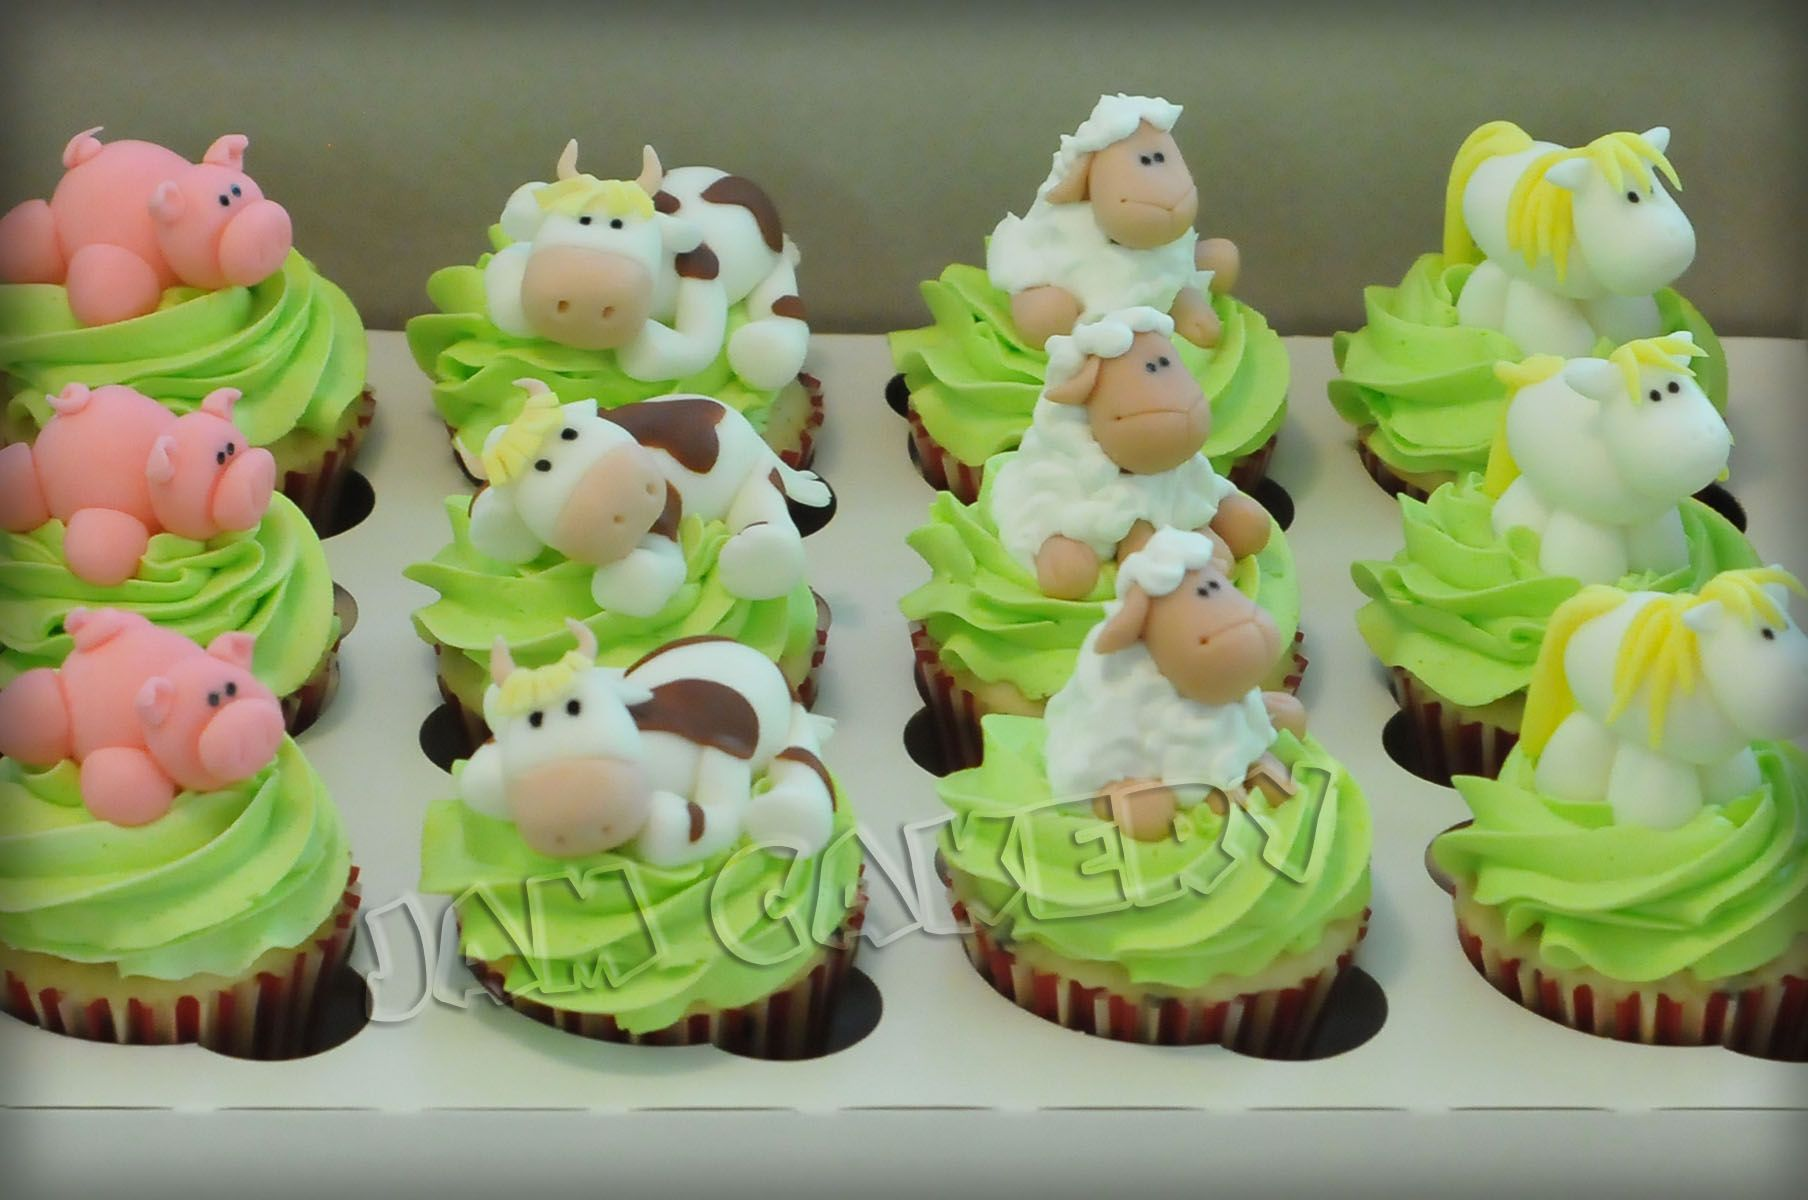 To acquire Cupcakes animal decorating ideas picture trends